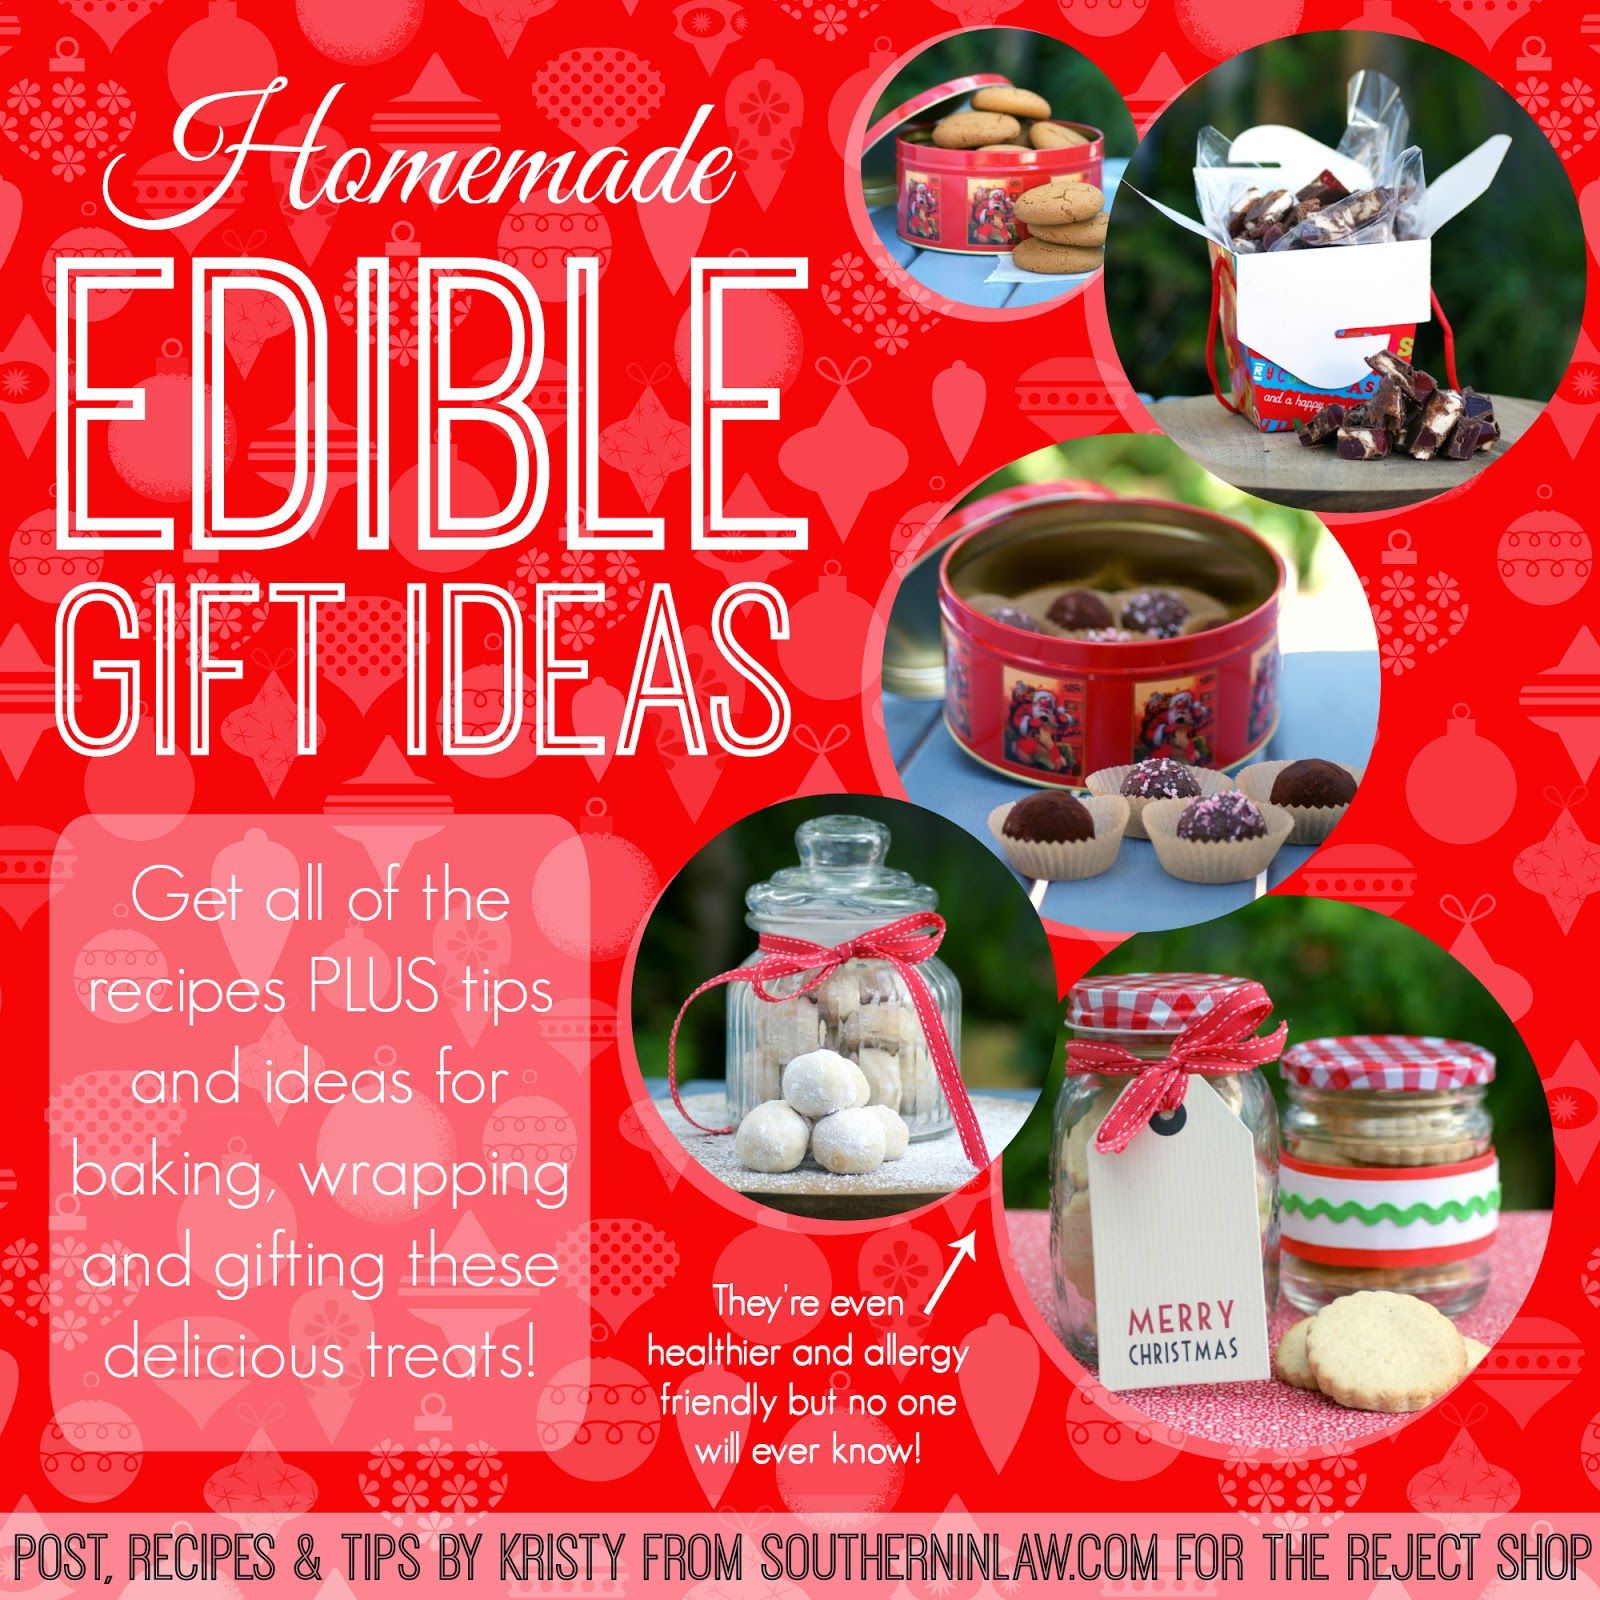 Homemade Edible Gift Ideas - Healthy, Low Fat, Gluten Free, Handmade Gift Ideas, Homemade Gifts for Christmas